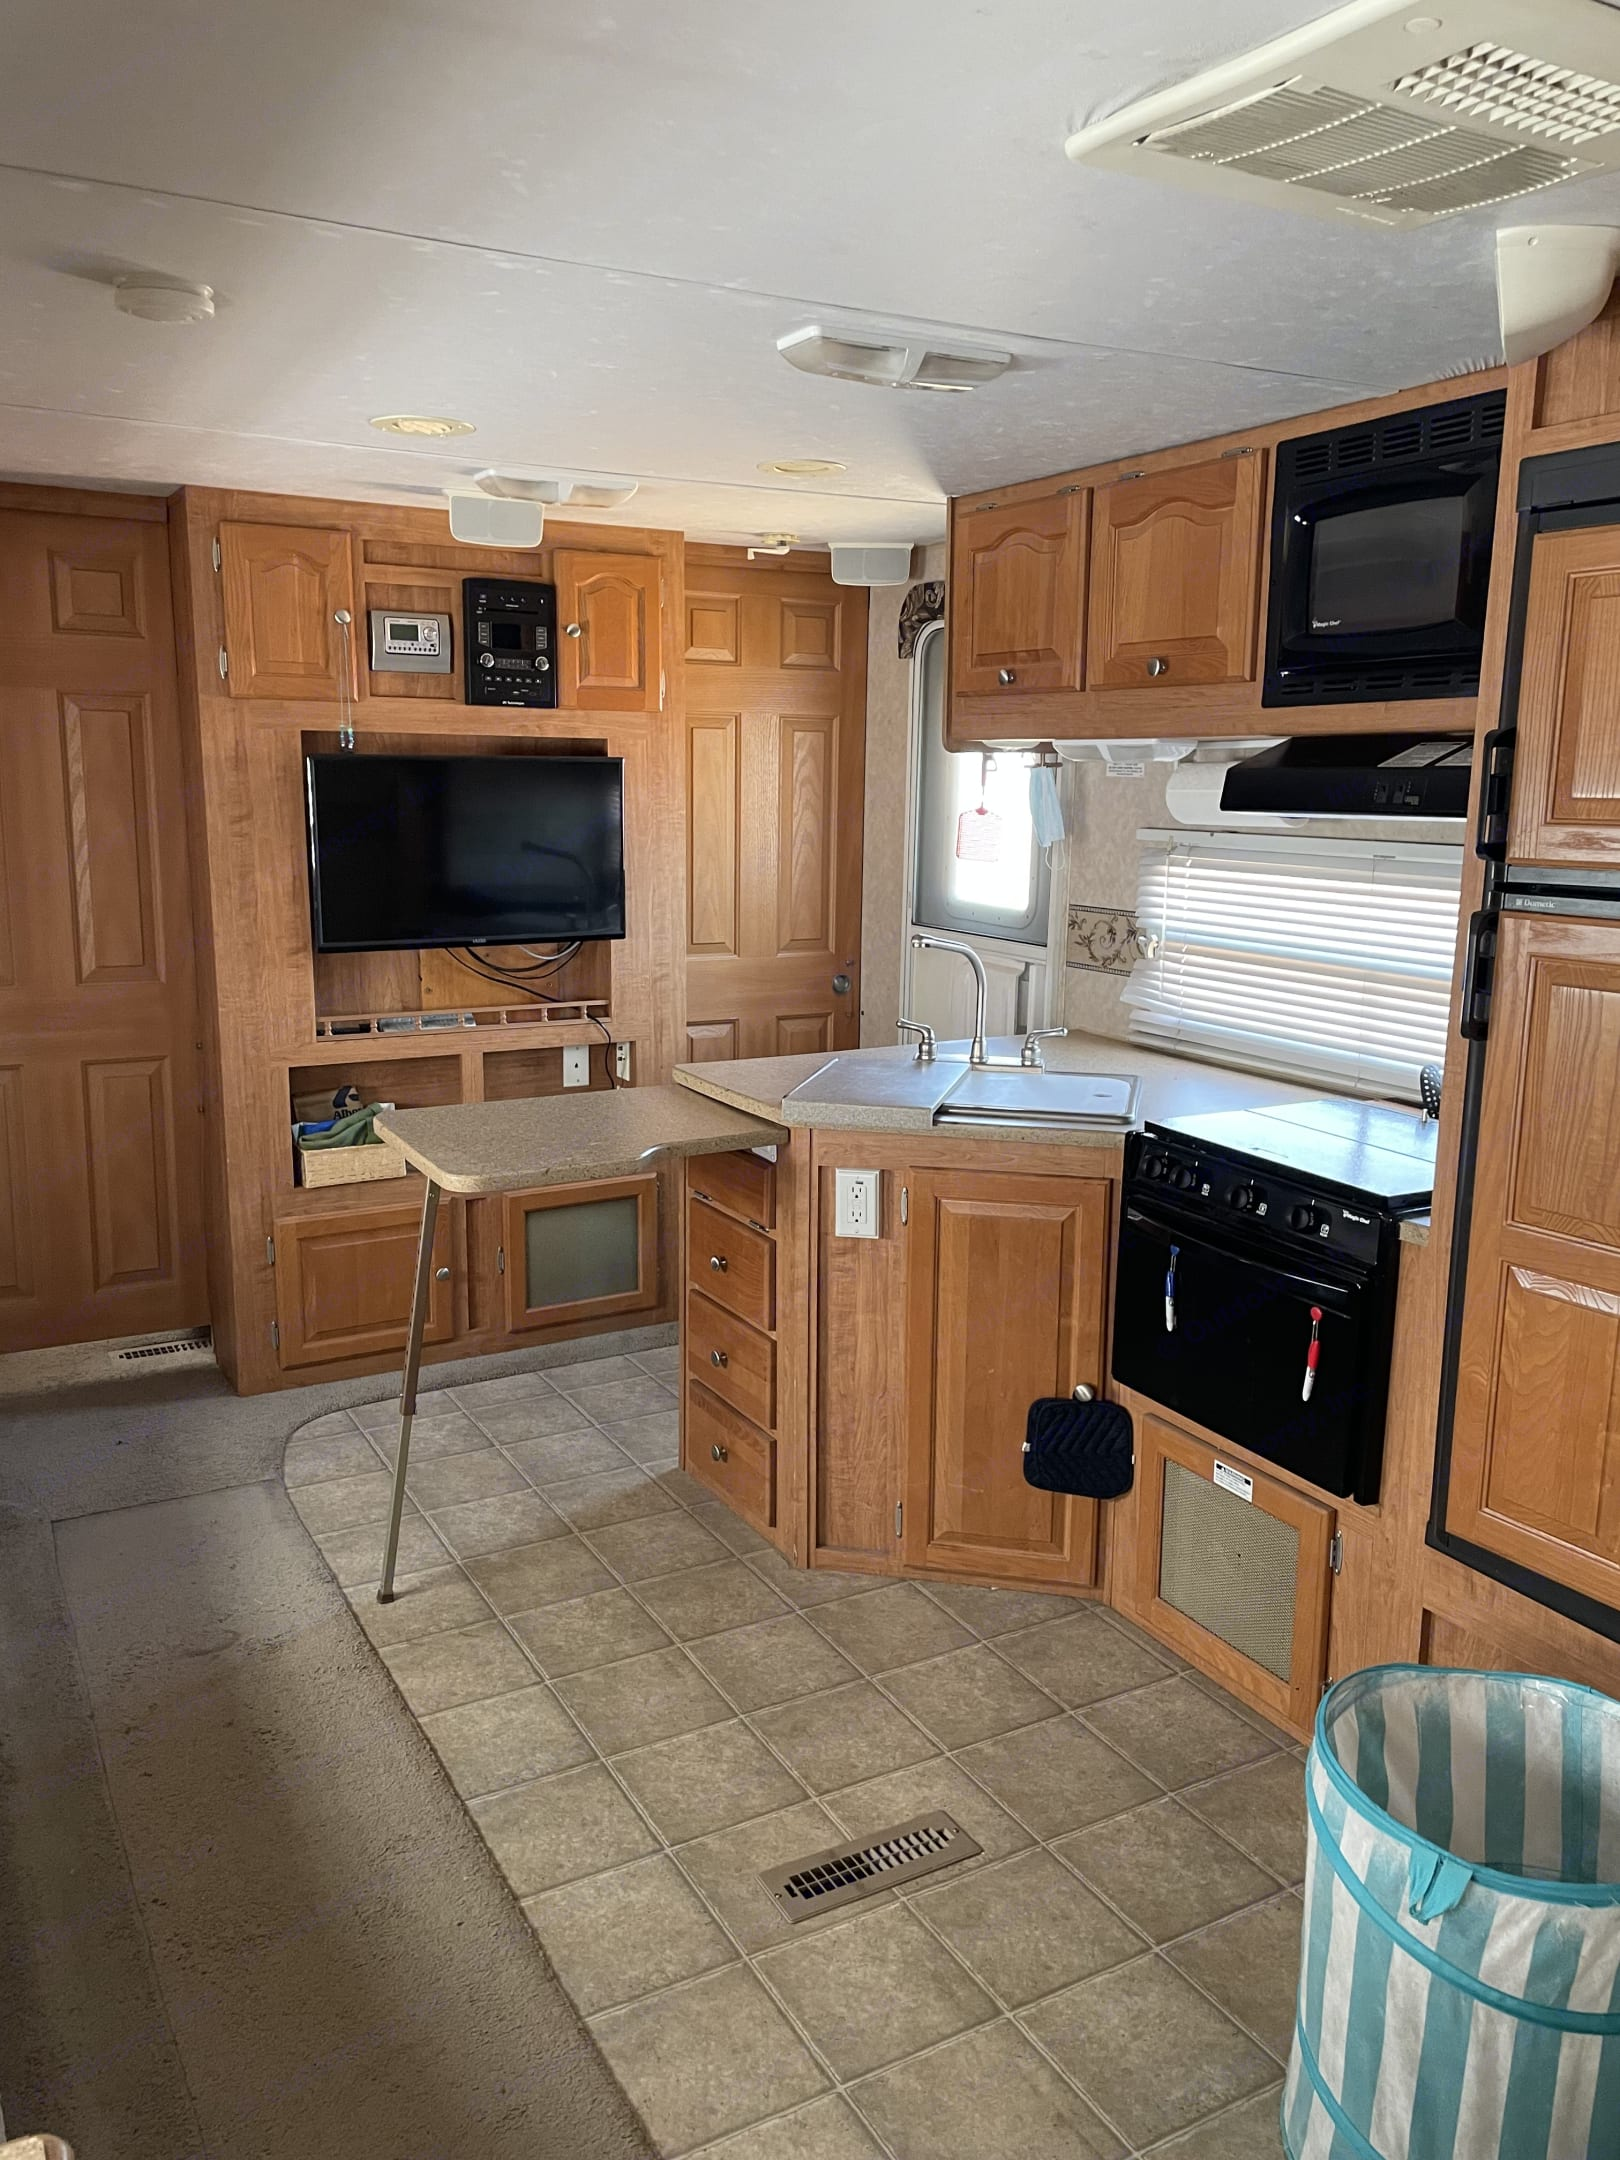 An attachable counter top comes in handy! Gives you the prep space you need for any meal!. Forest River Rockwood Lite 2007